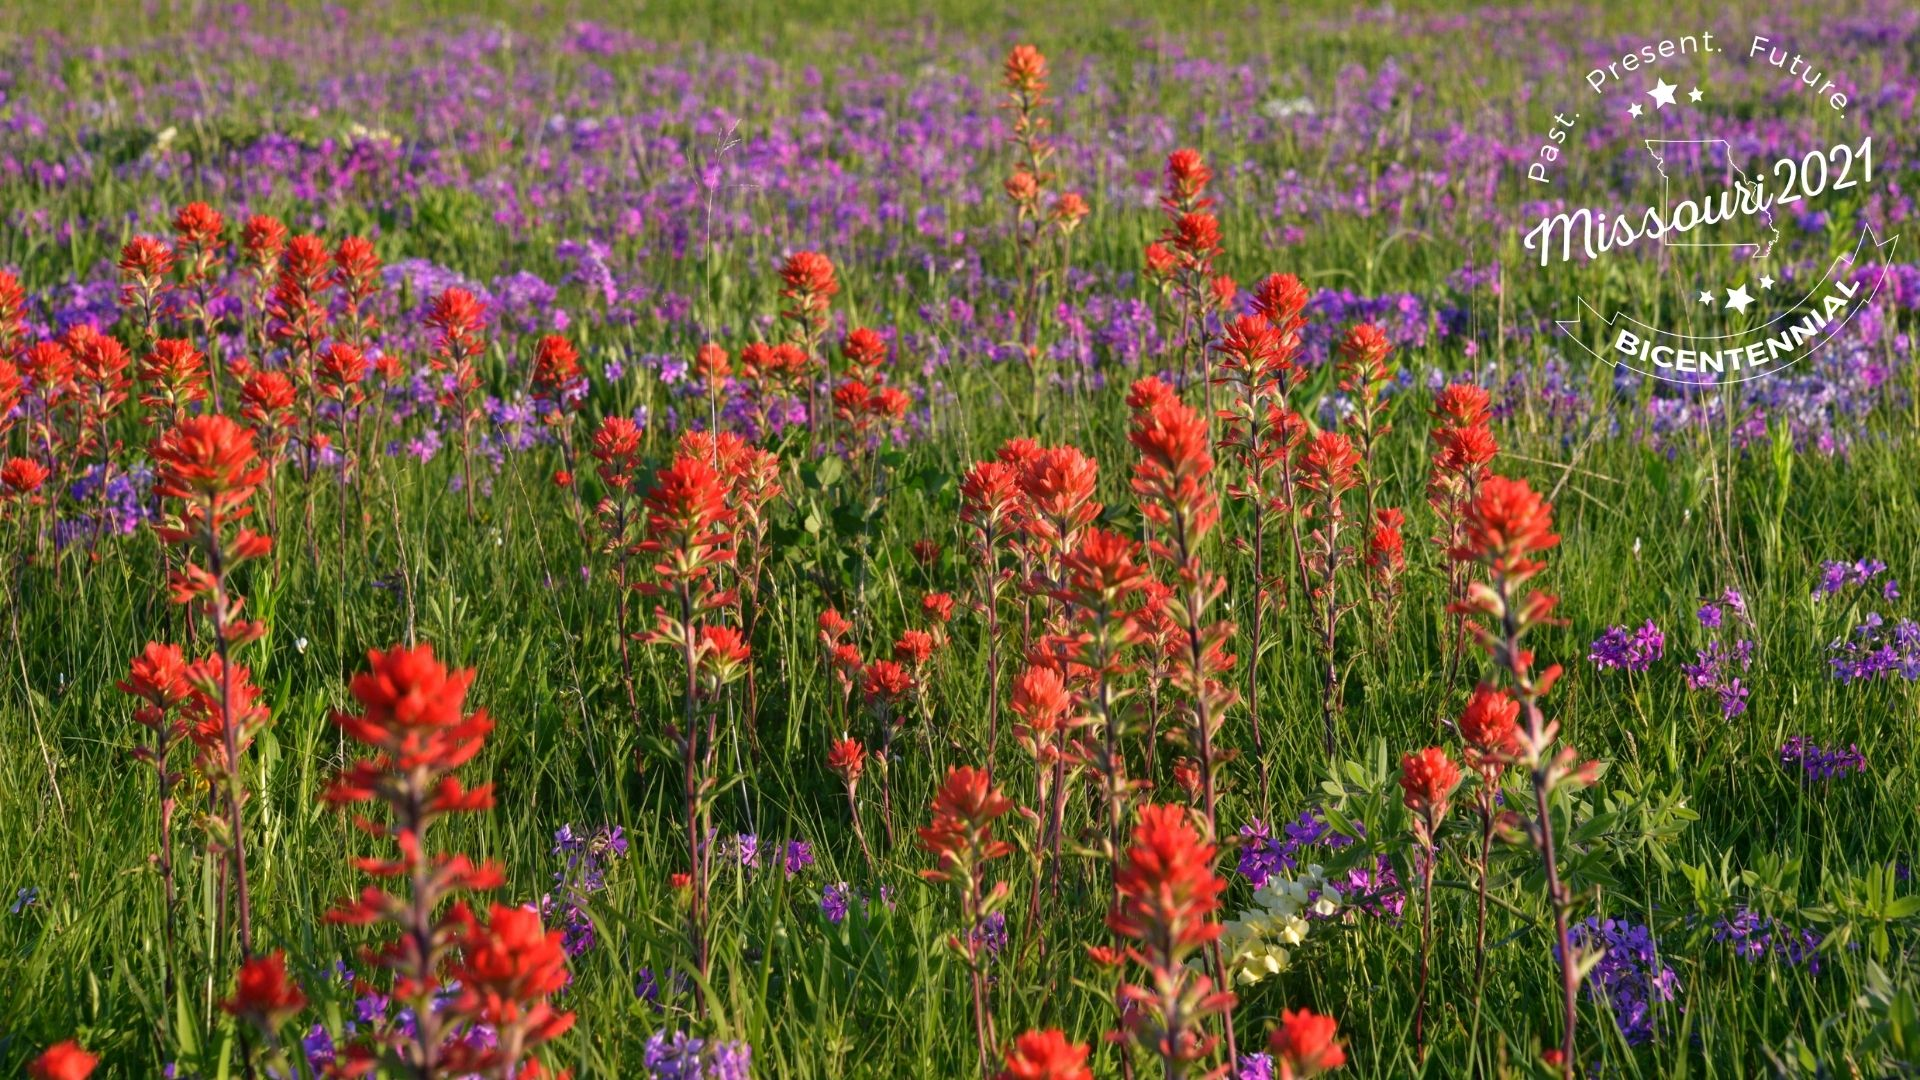 Bright red-orange indian paintbrush flowers and bright purple flowers in a green field